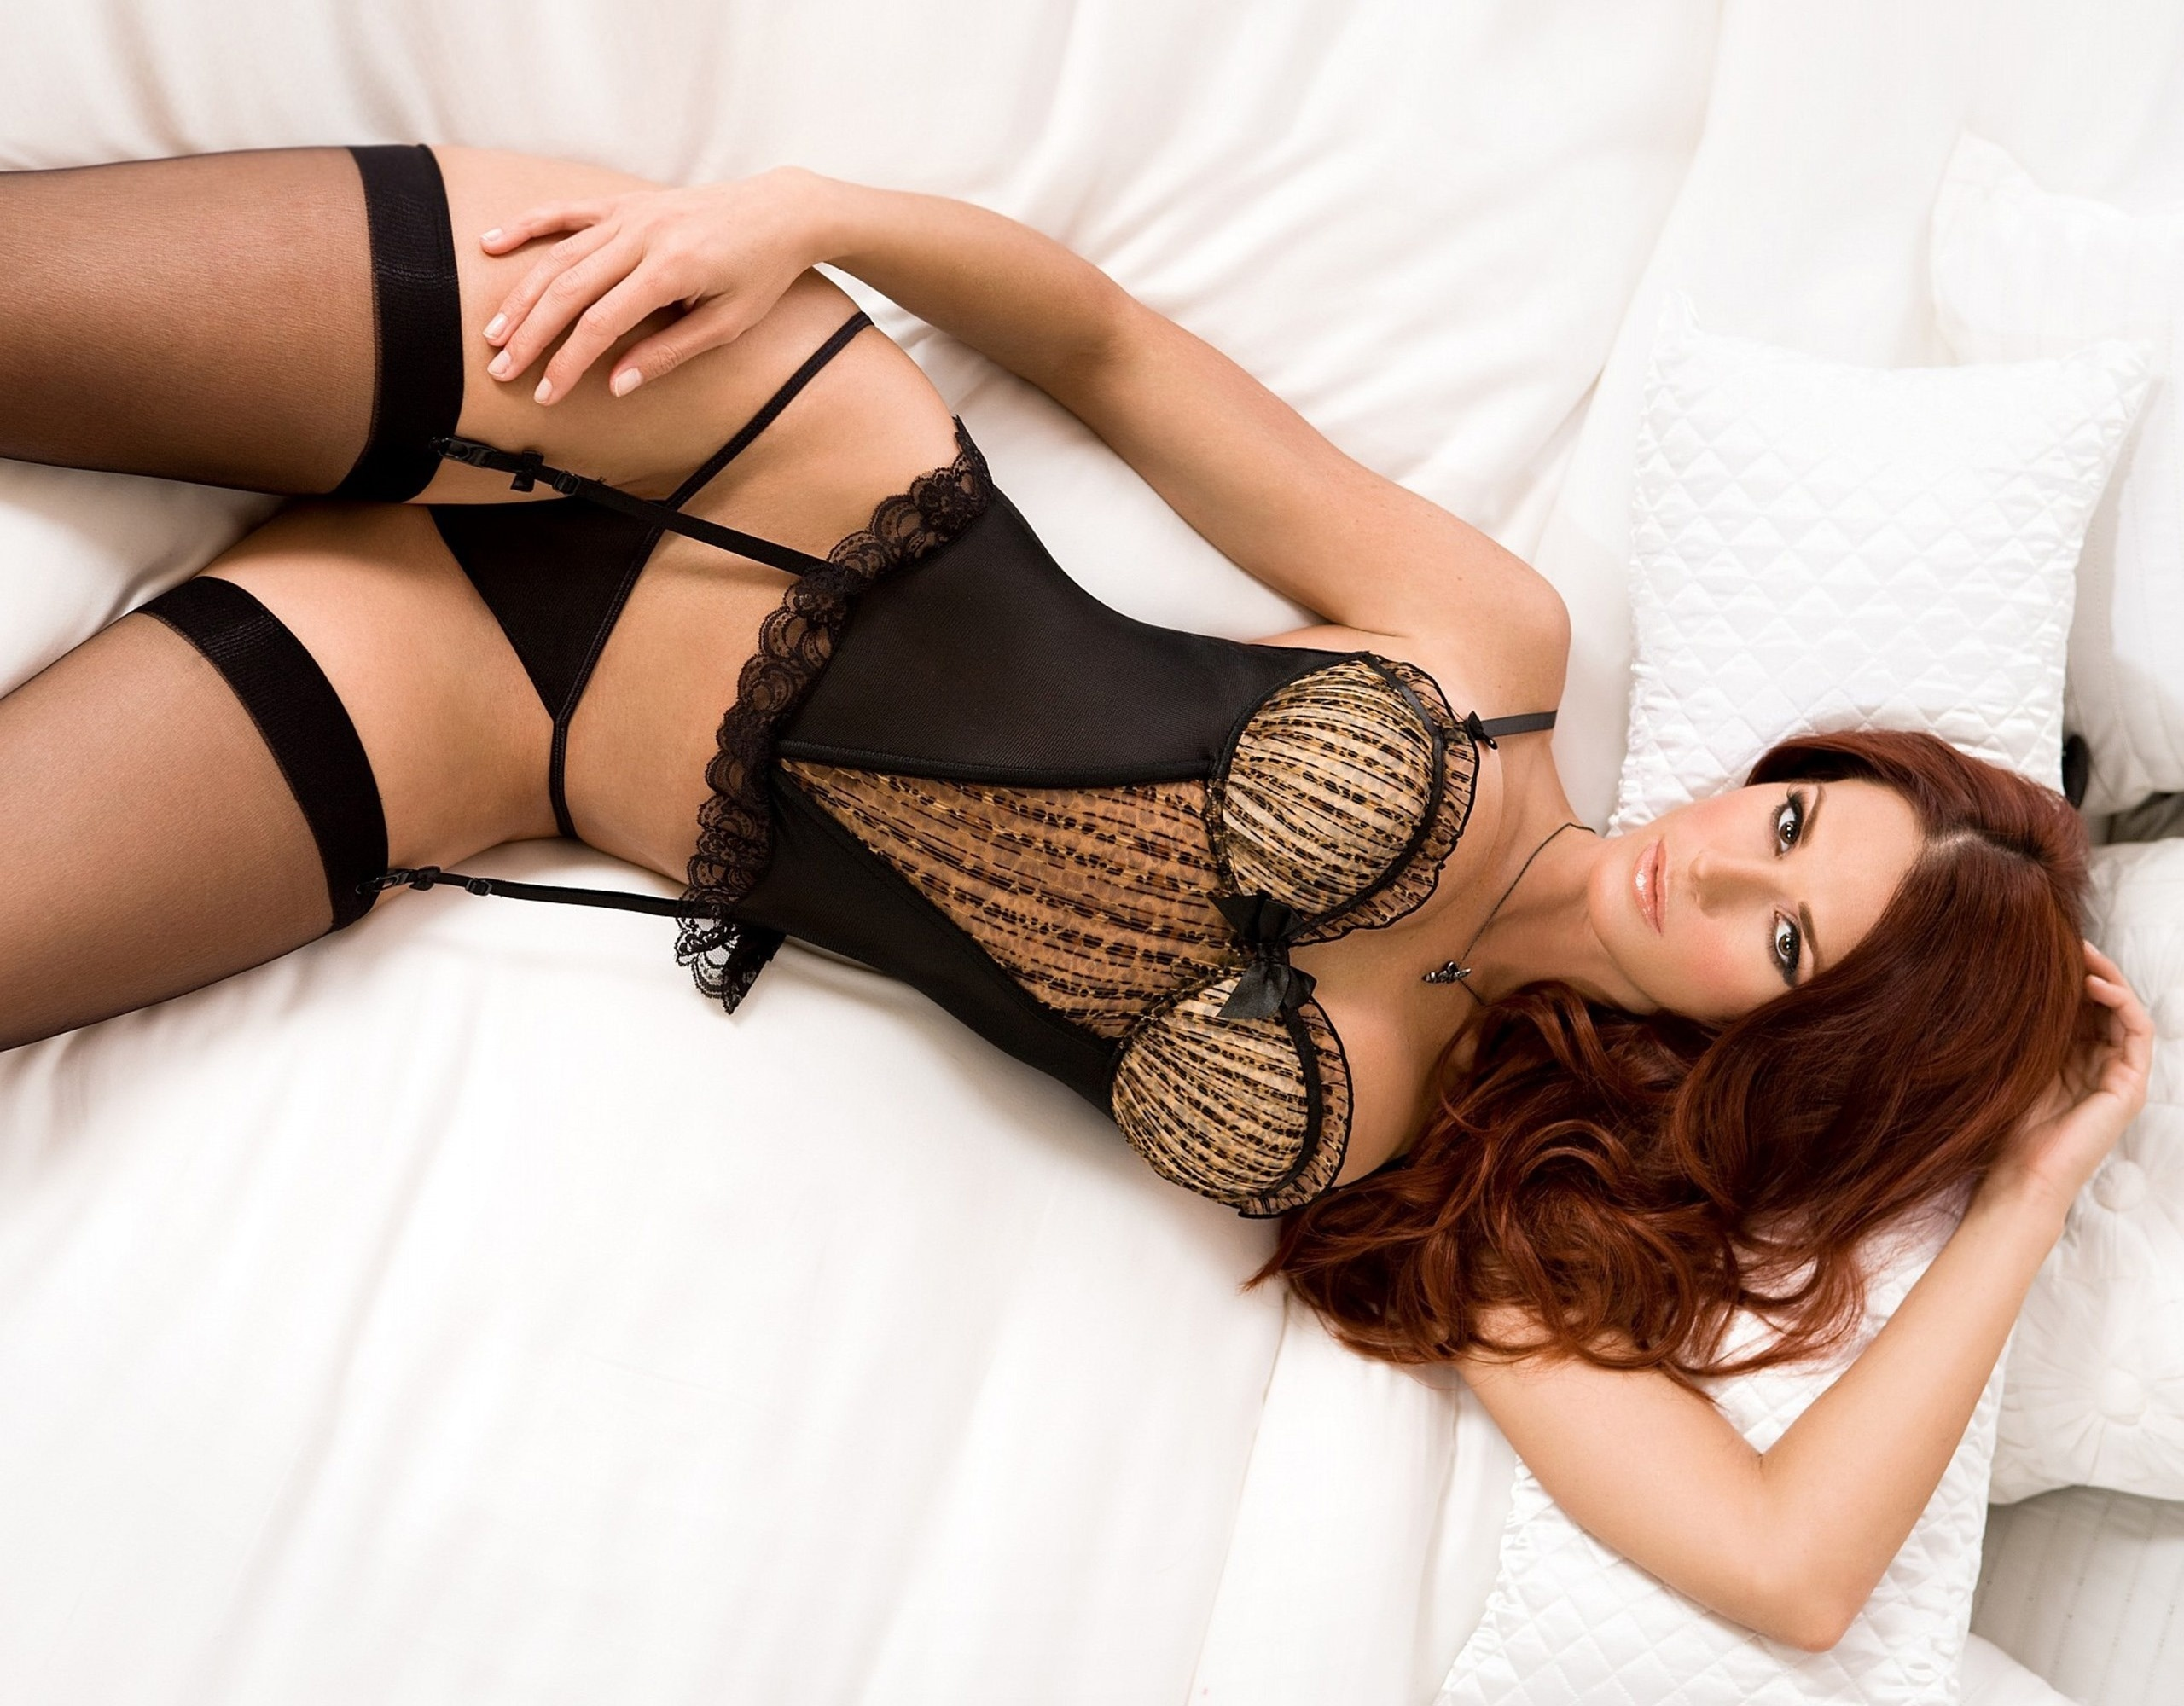 Aged brunette Mindi Mink removes see thru lingerie to pose on bed in stockings  680385